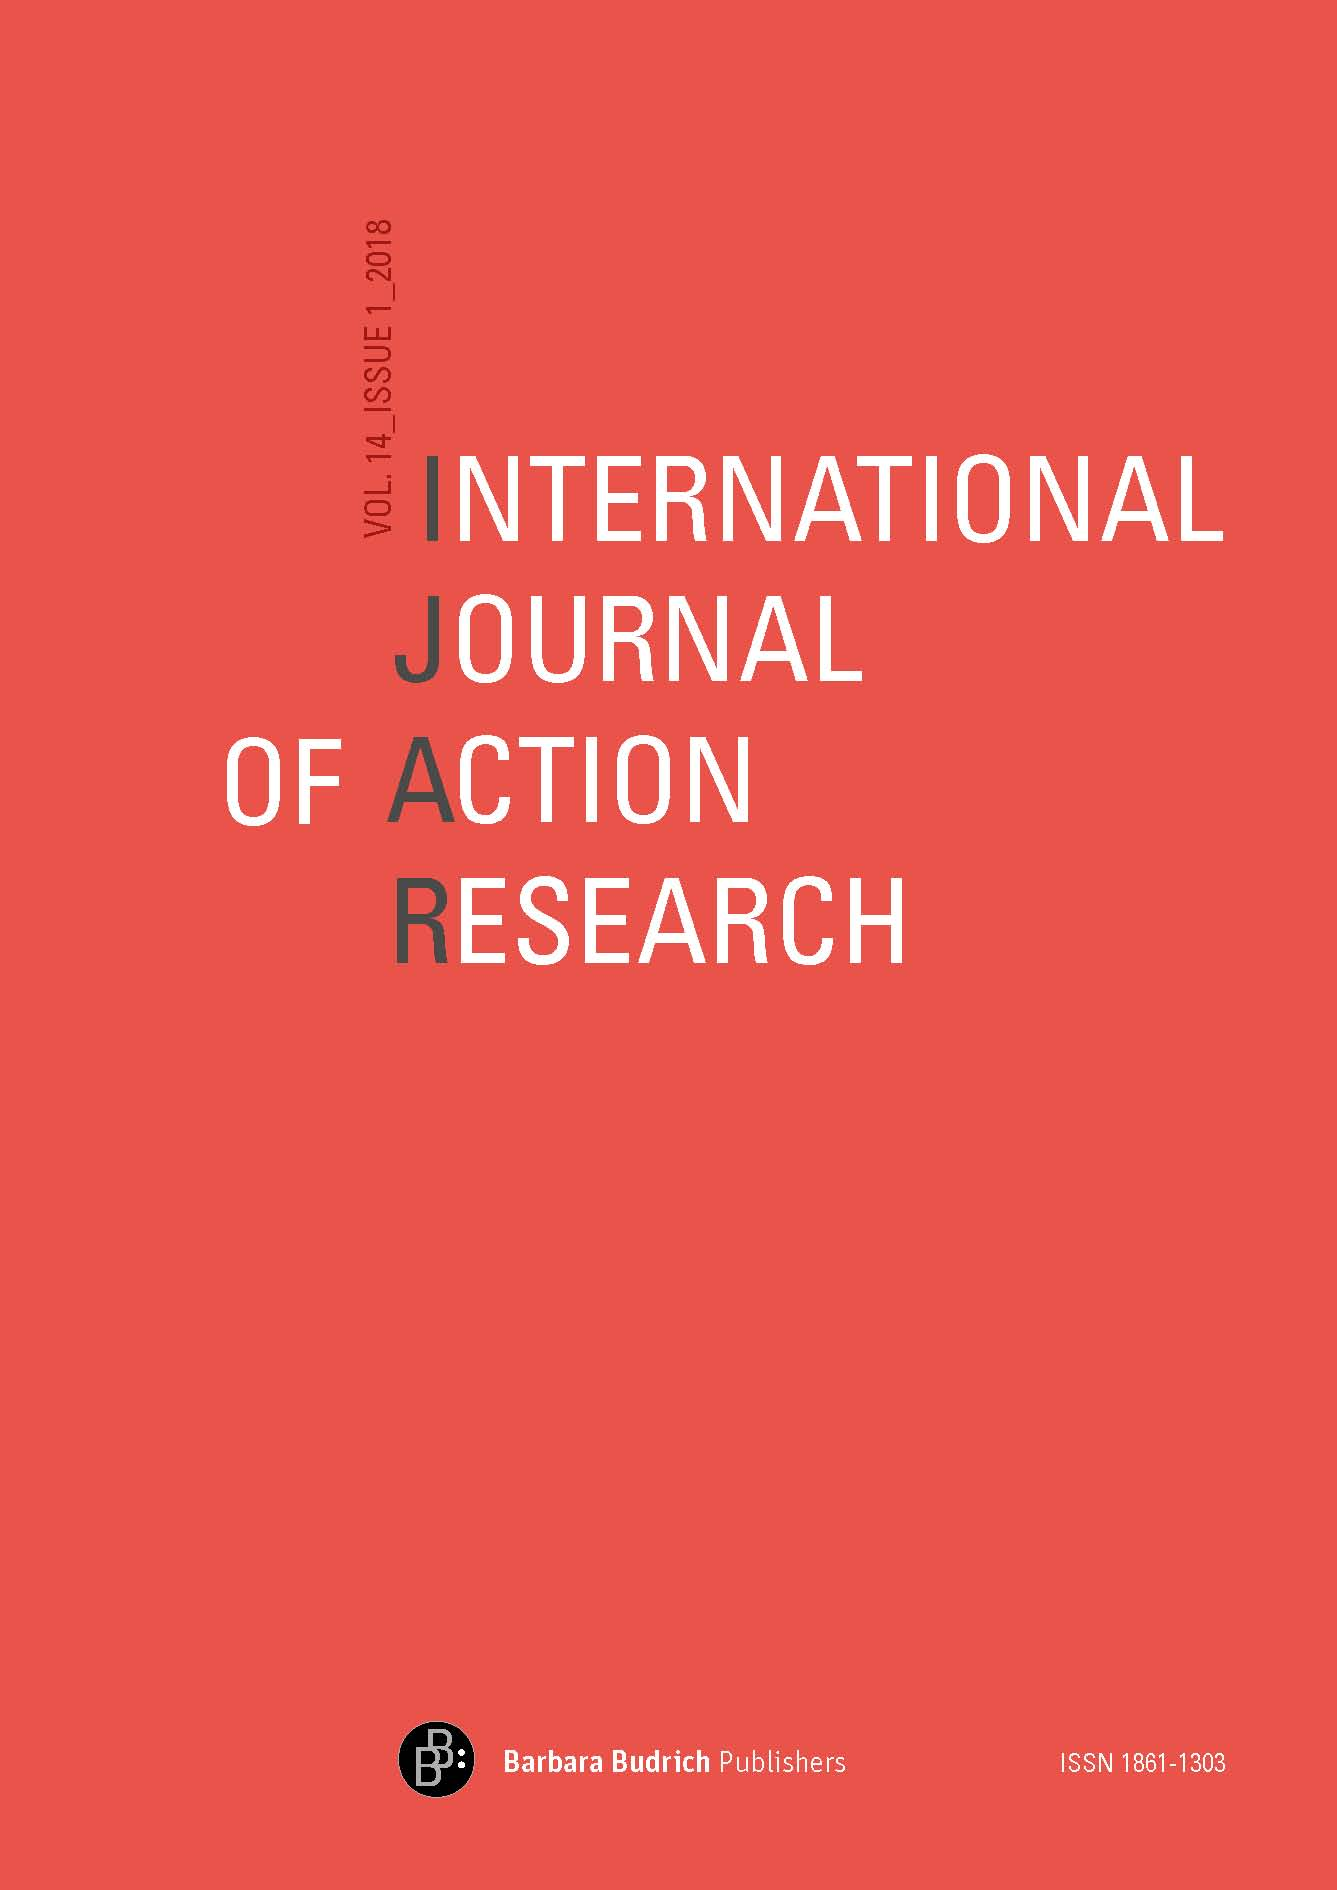 IJAR – International Journal of Action Research 1-2018